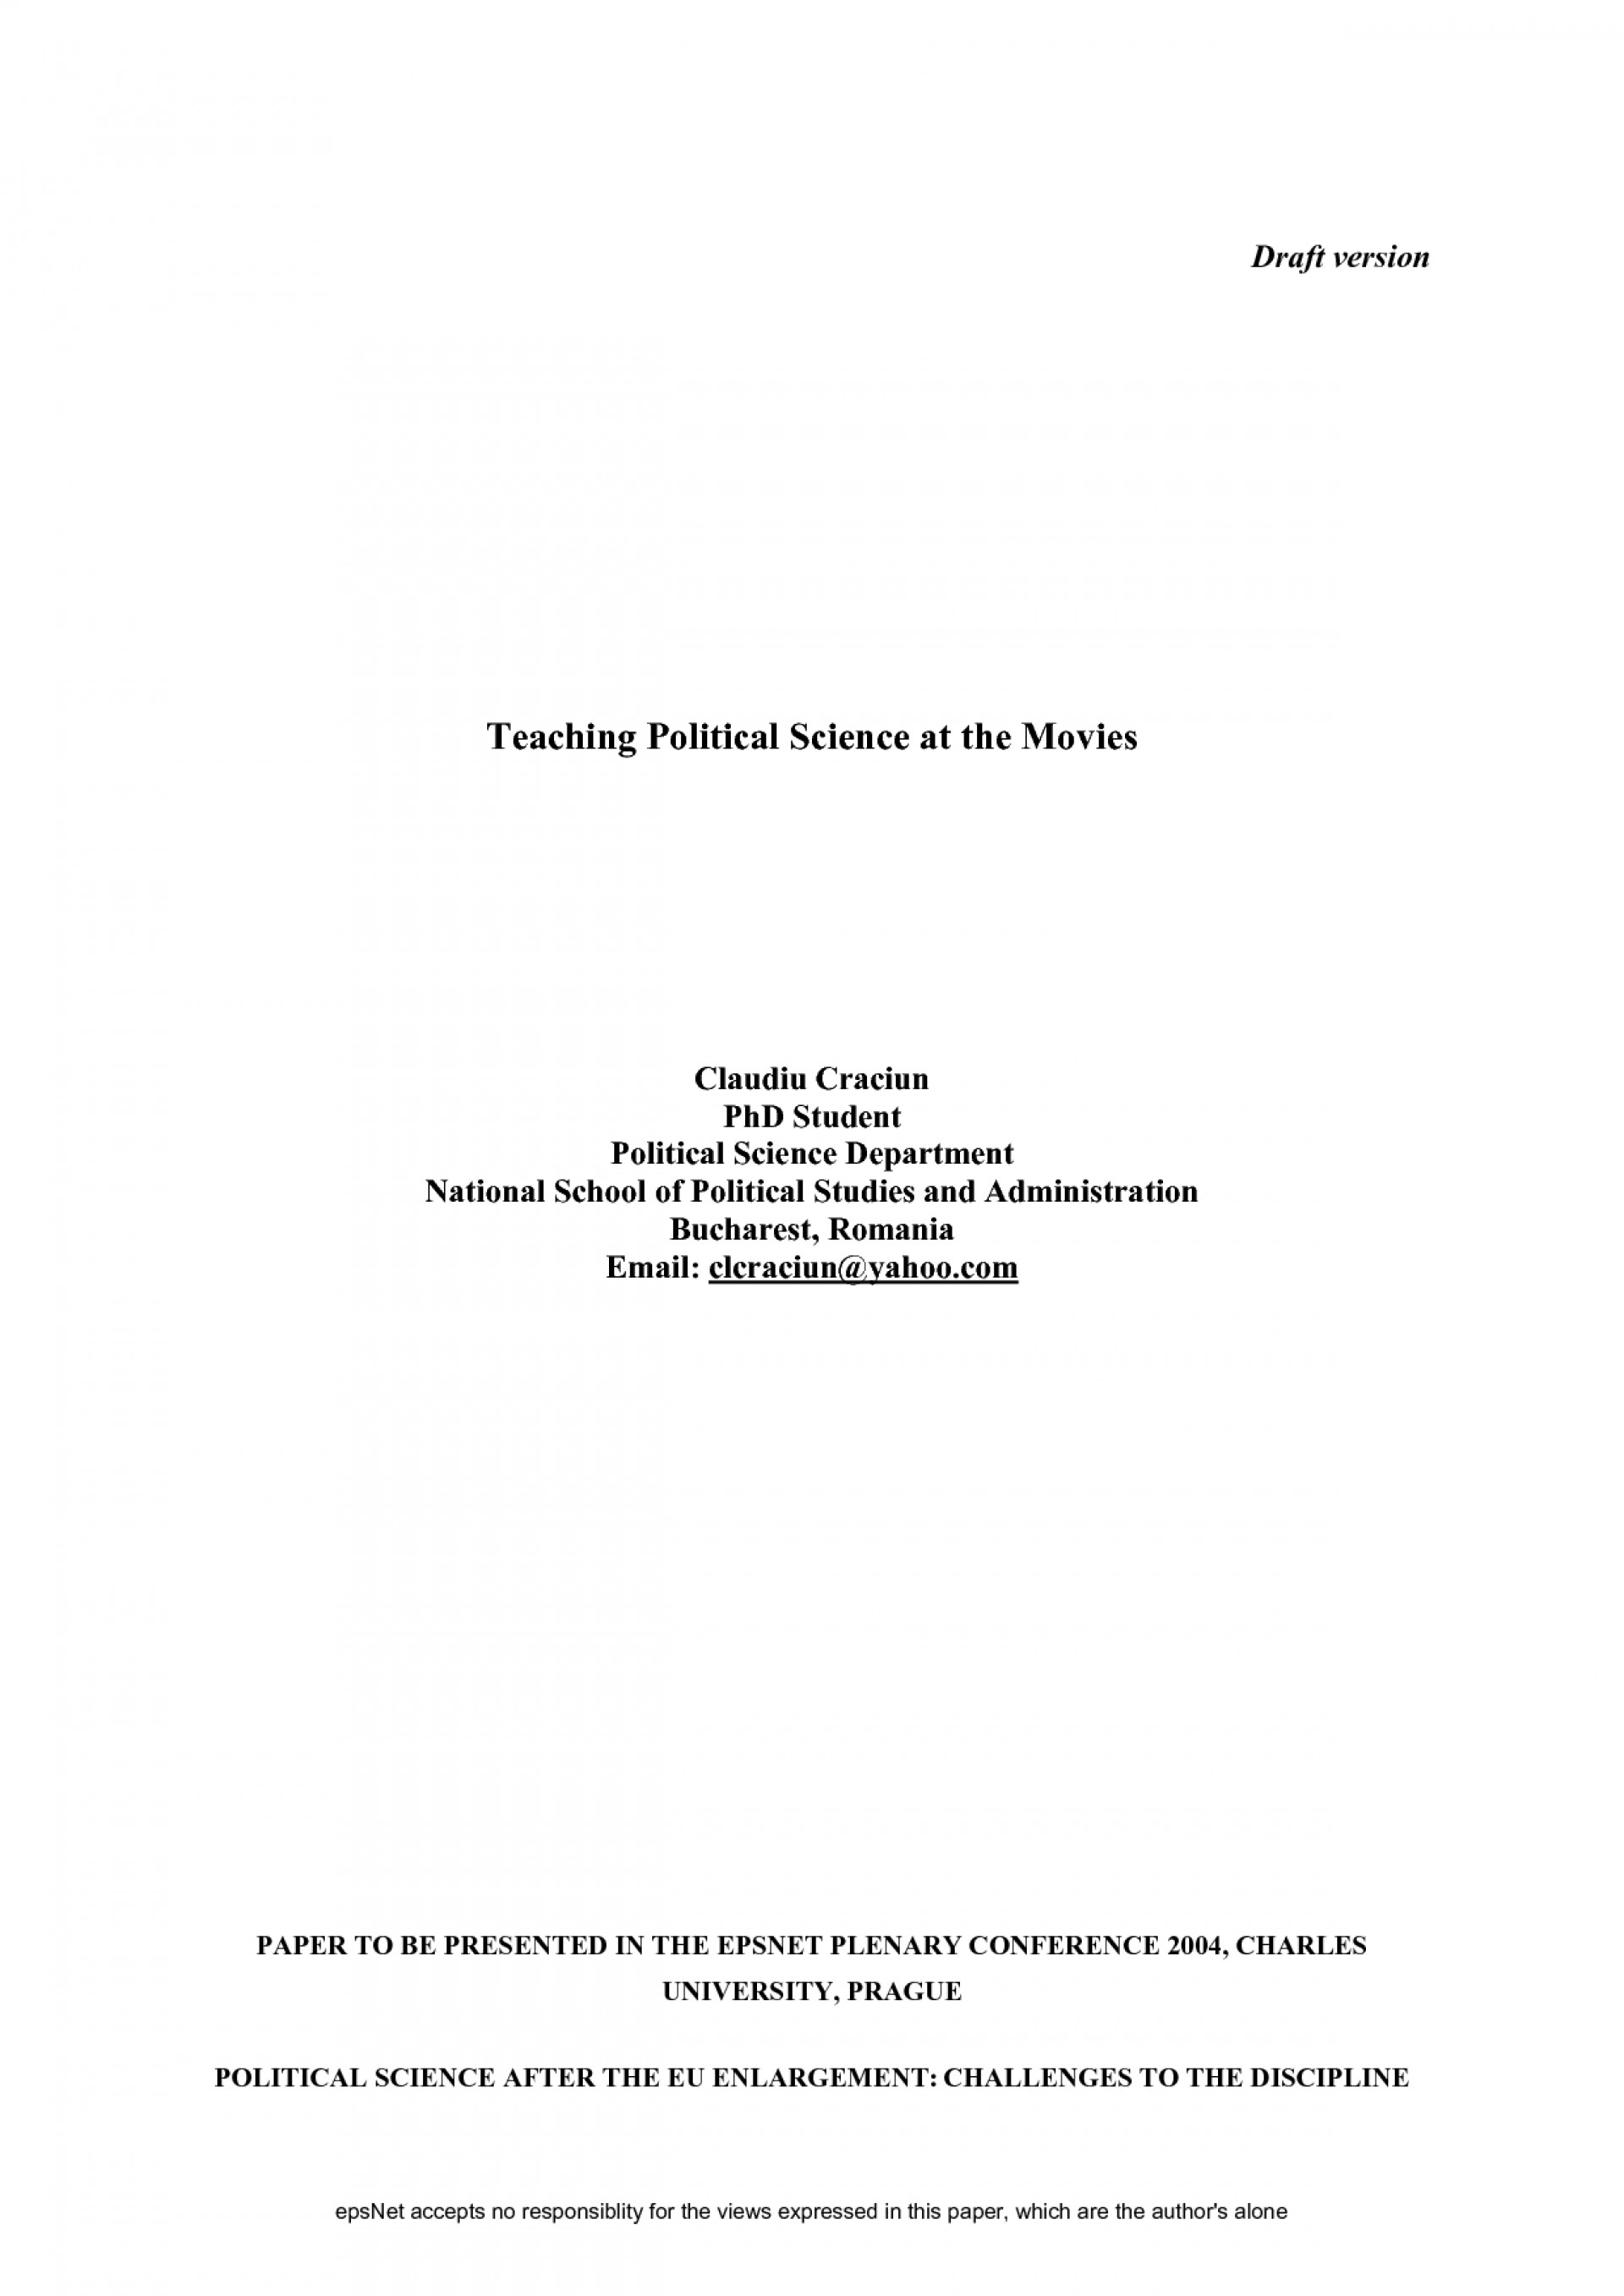 023 Cover Page For Research Paper Apa Style Apsa Example 319500 Dreaded Of Term Template Format 1920